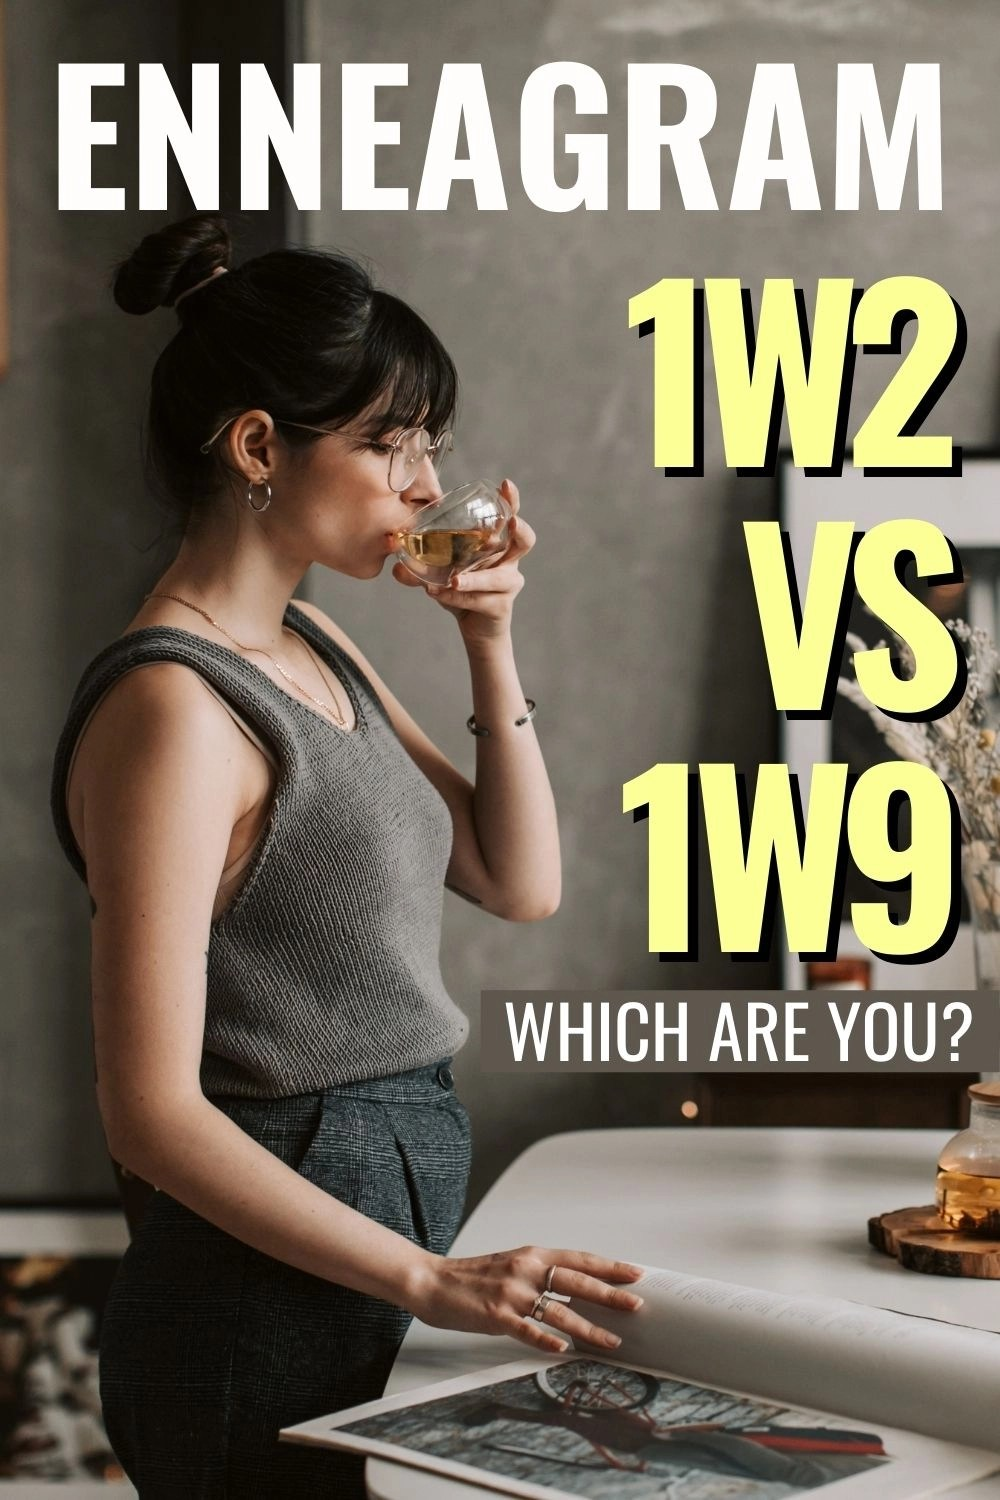 Enneagram 1w2 vs 1w9 Which Are You?